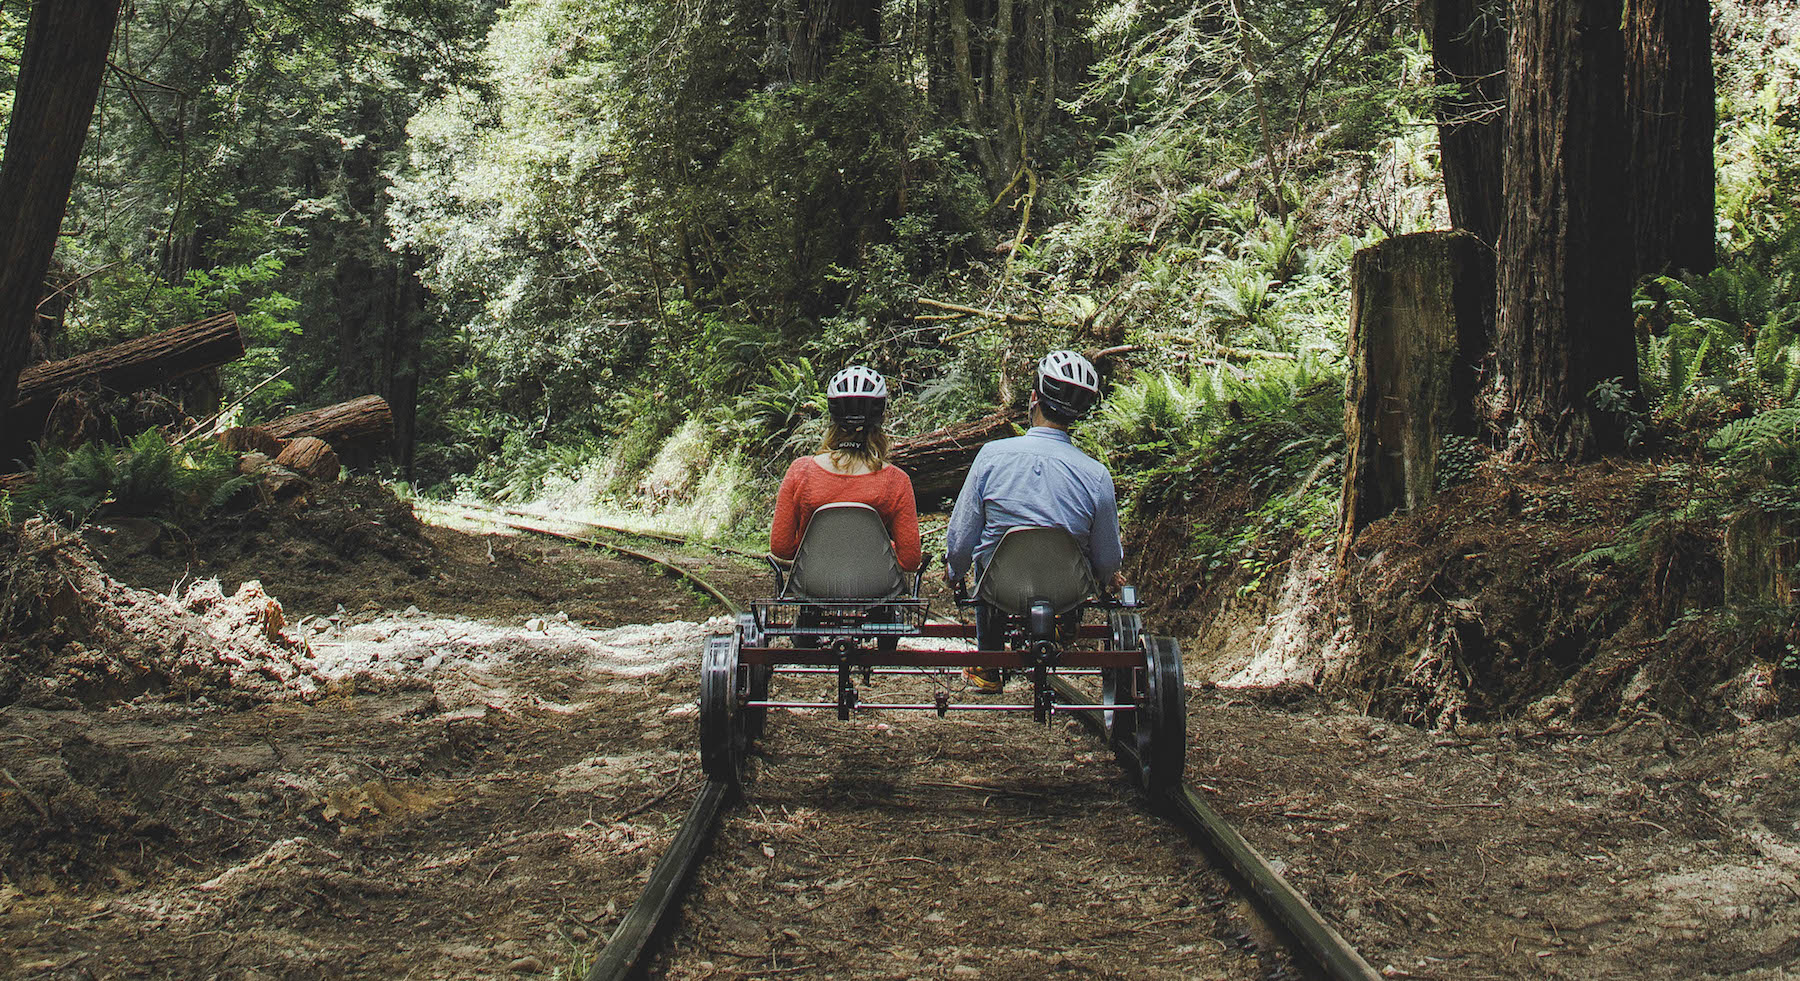 RailBikes Come to the Redwoods